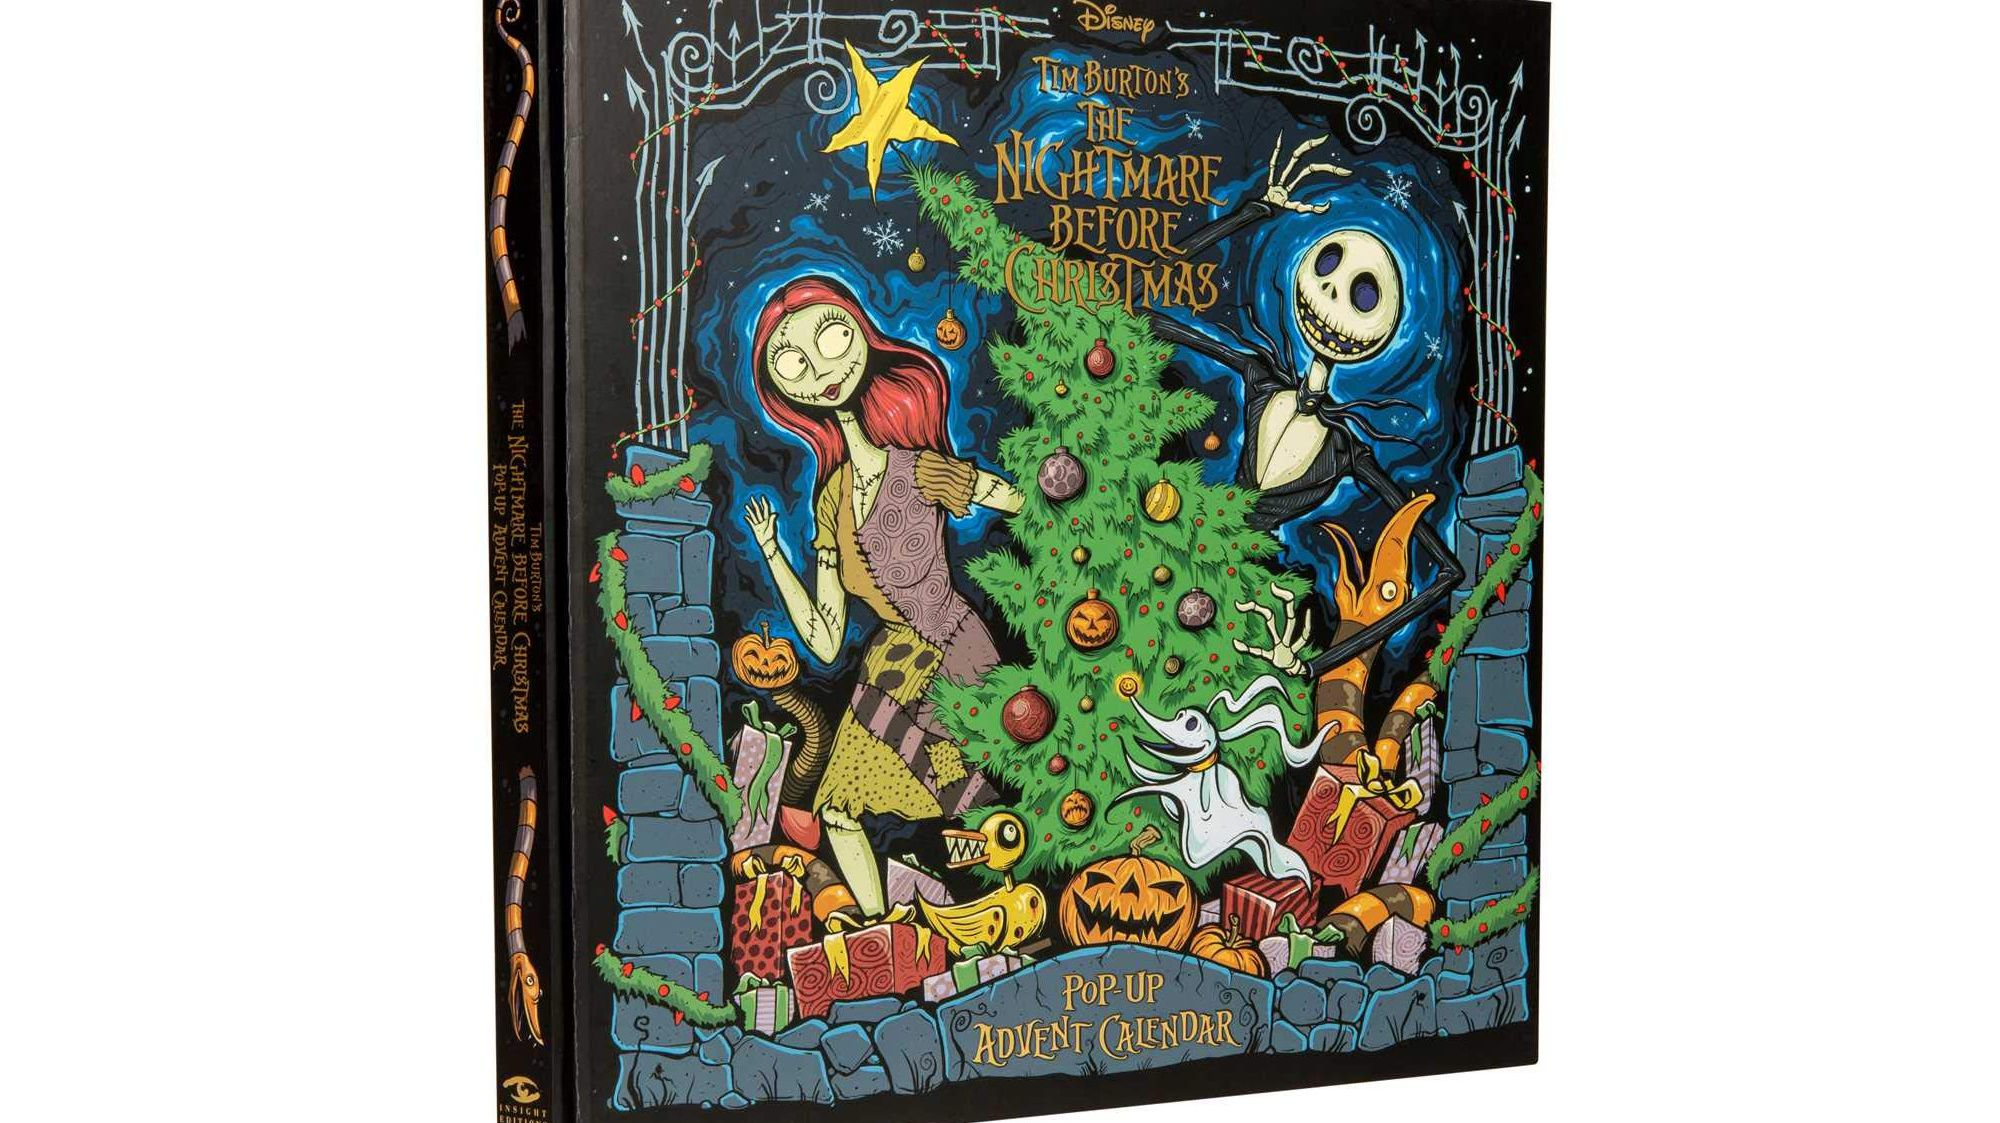 Get Ready for the Holiday Season Early With This <em>Nightmare Before Christmas</em> Pop-Up Advent Calendar